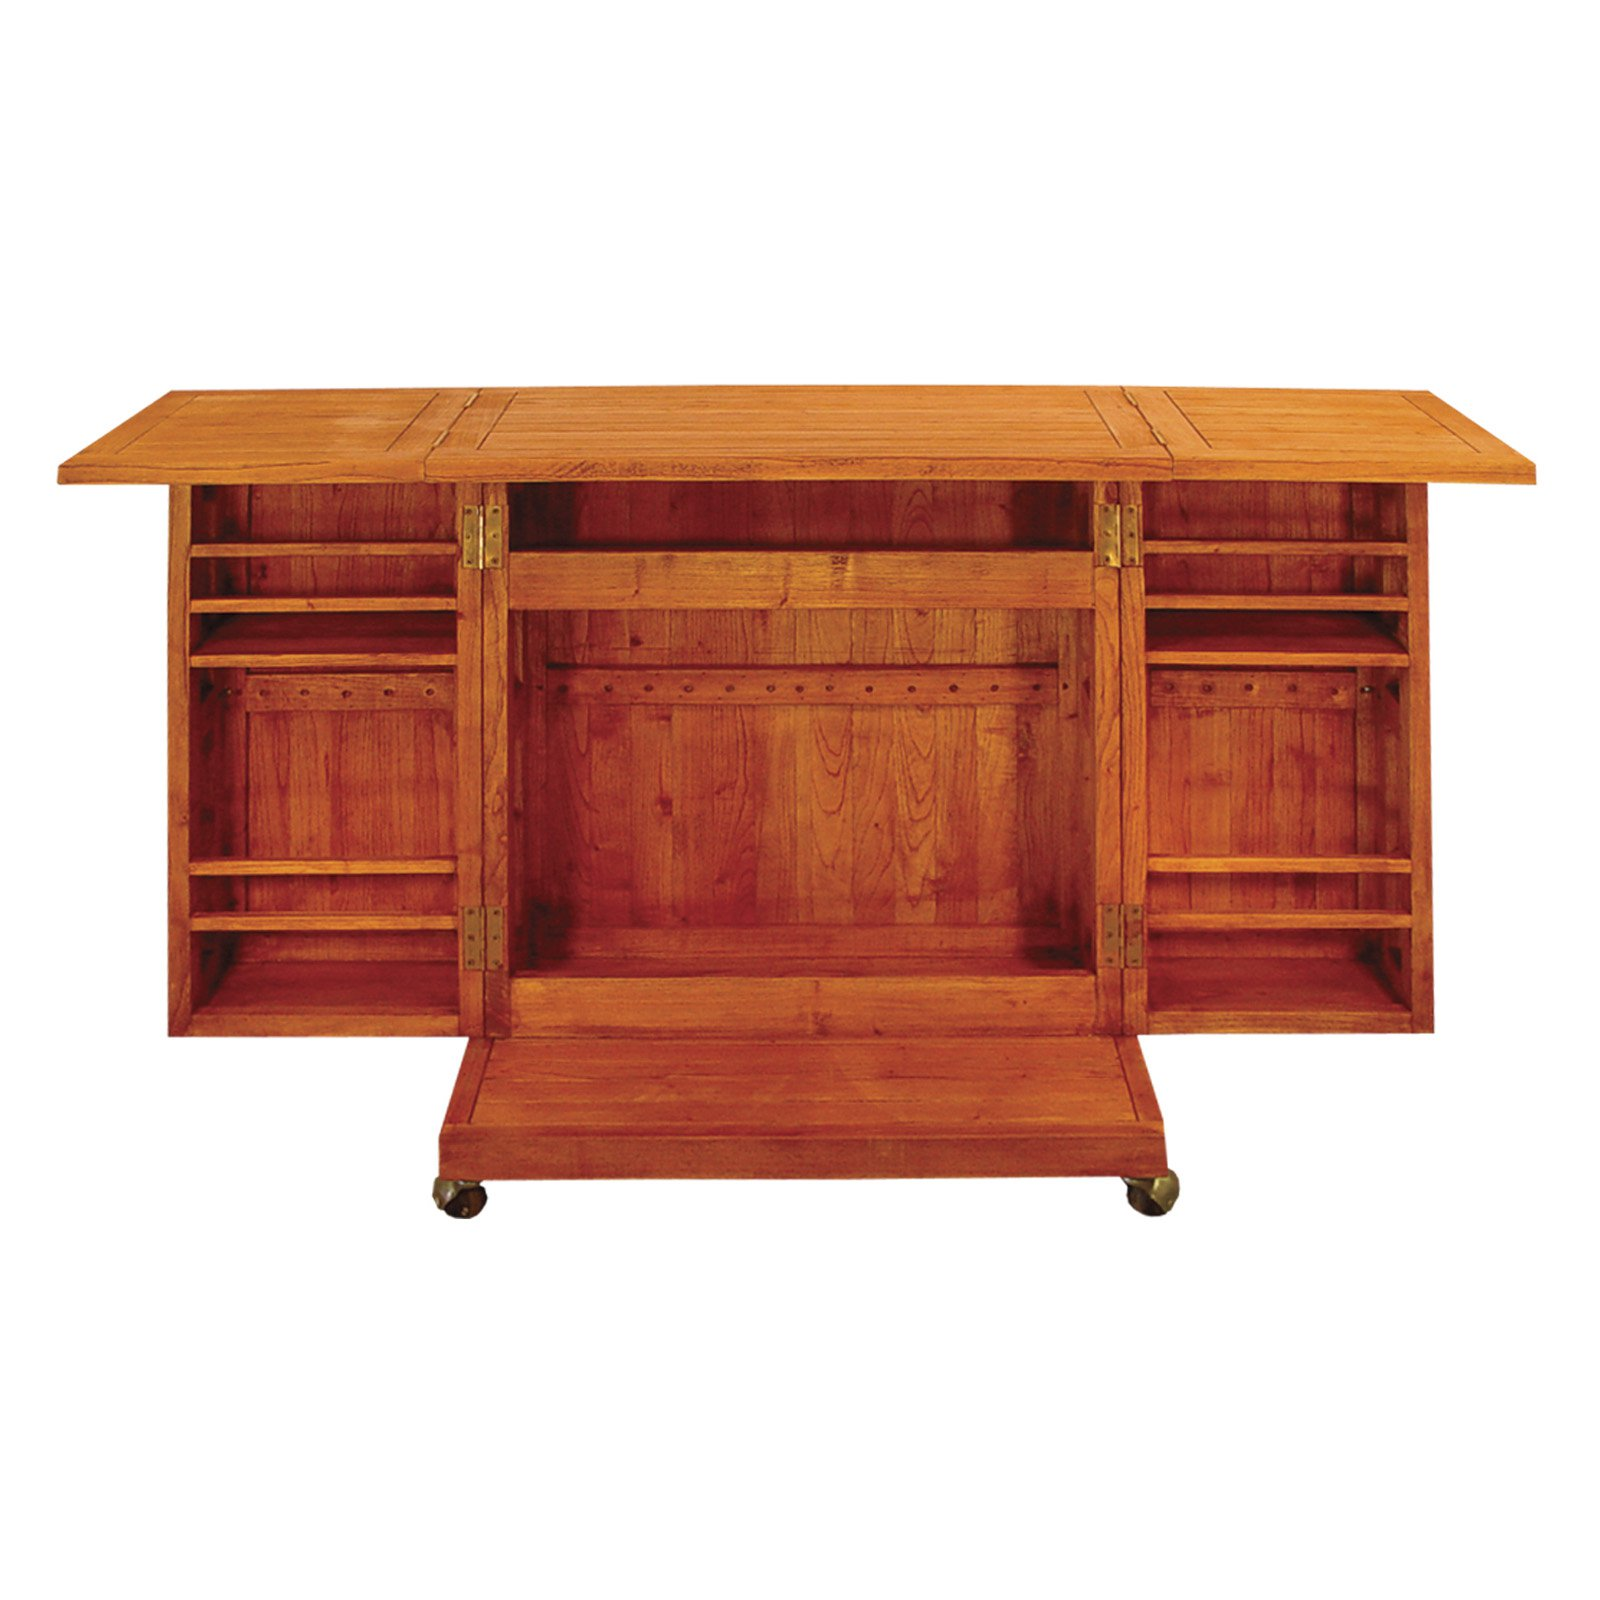 Terrace Mates Talavera Asian Hardwood All Purpose Compact, Fold-Out, Rolling Mini-Bar, Natural Oil Stain